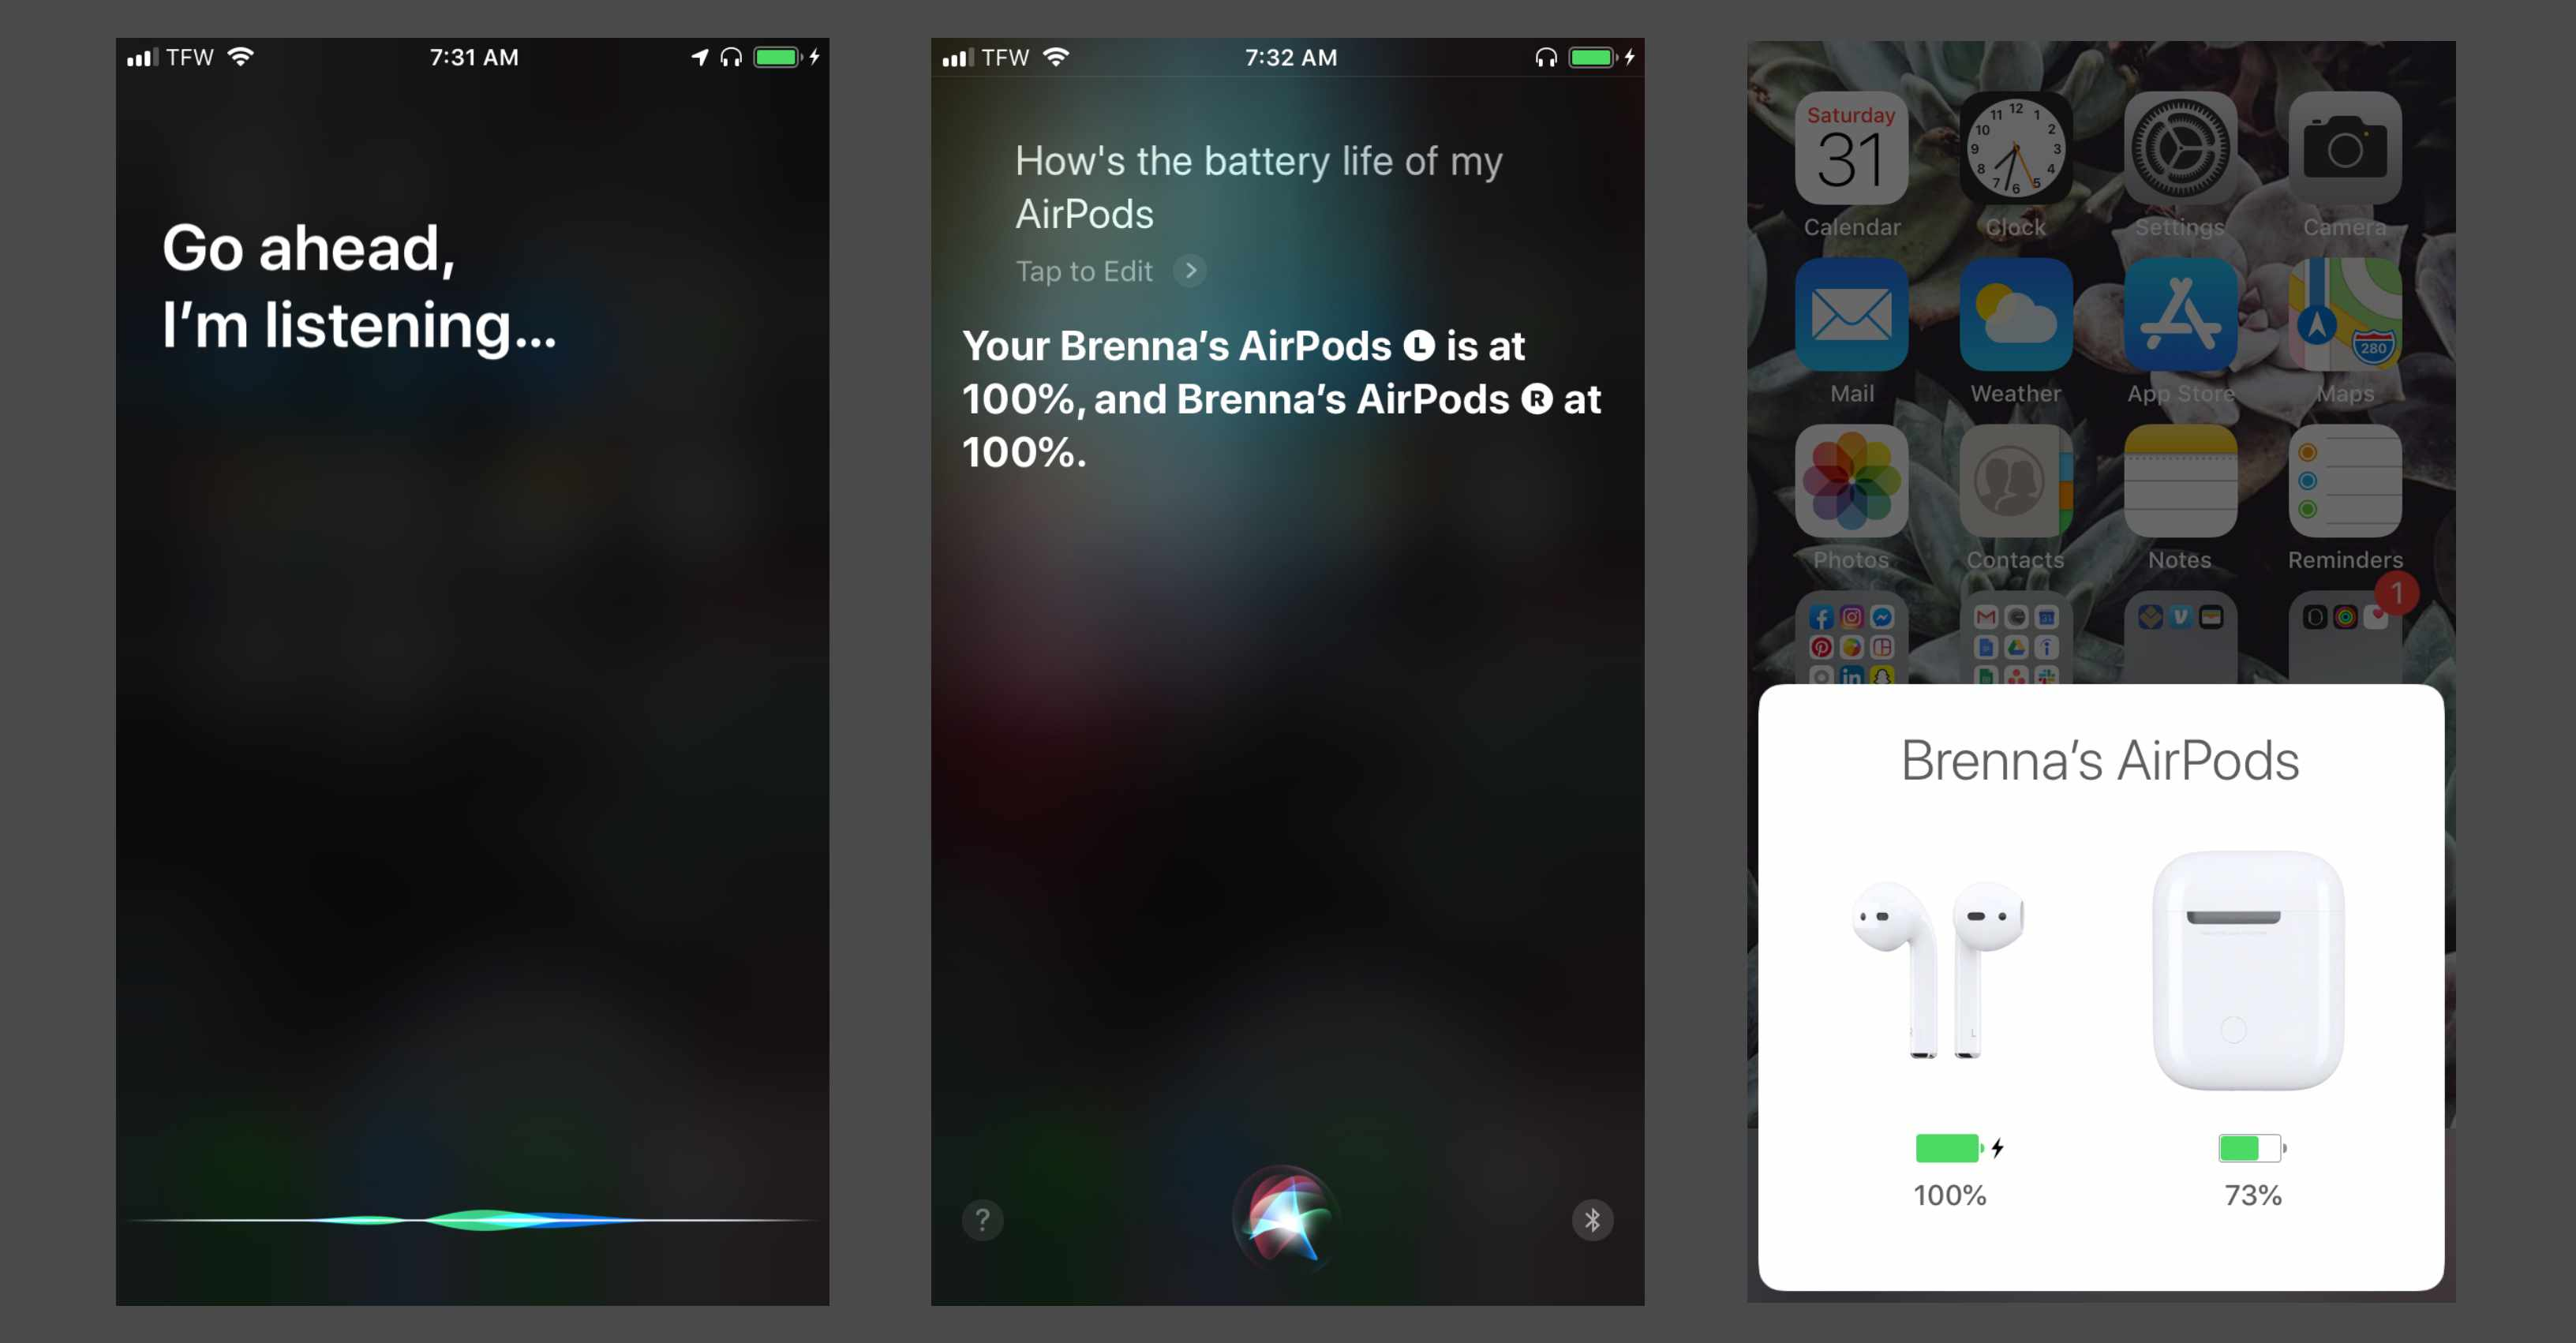 Using Siri with AirPods to check AirPod battery life